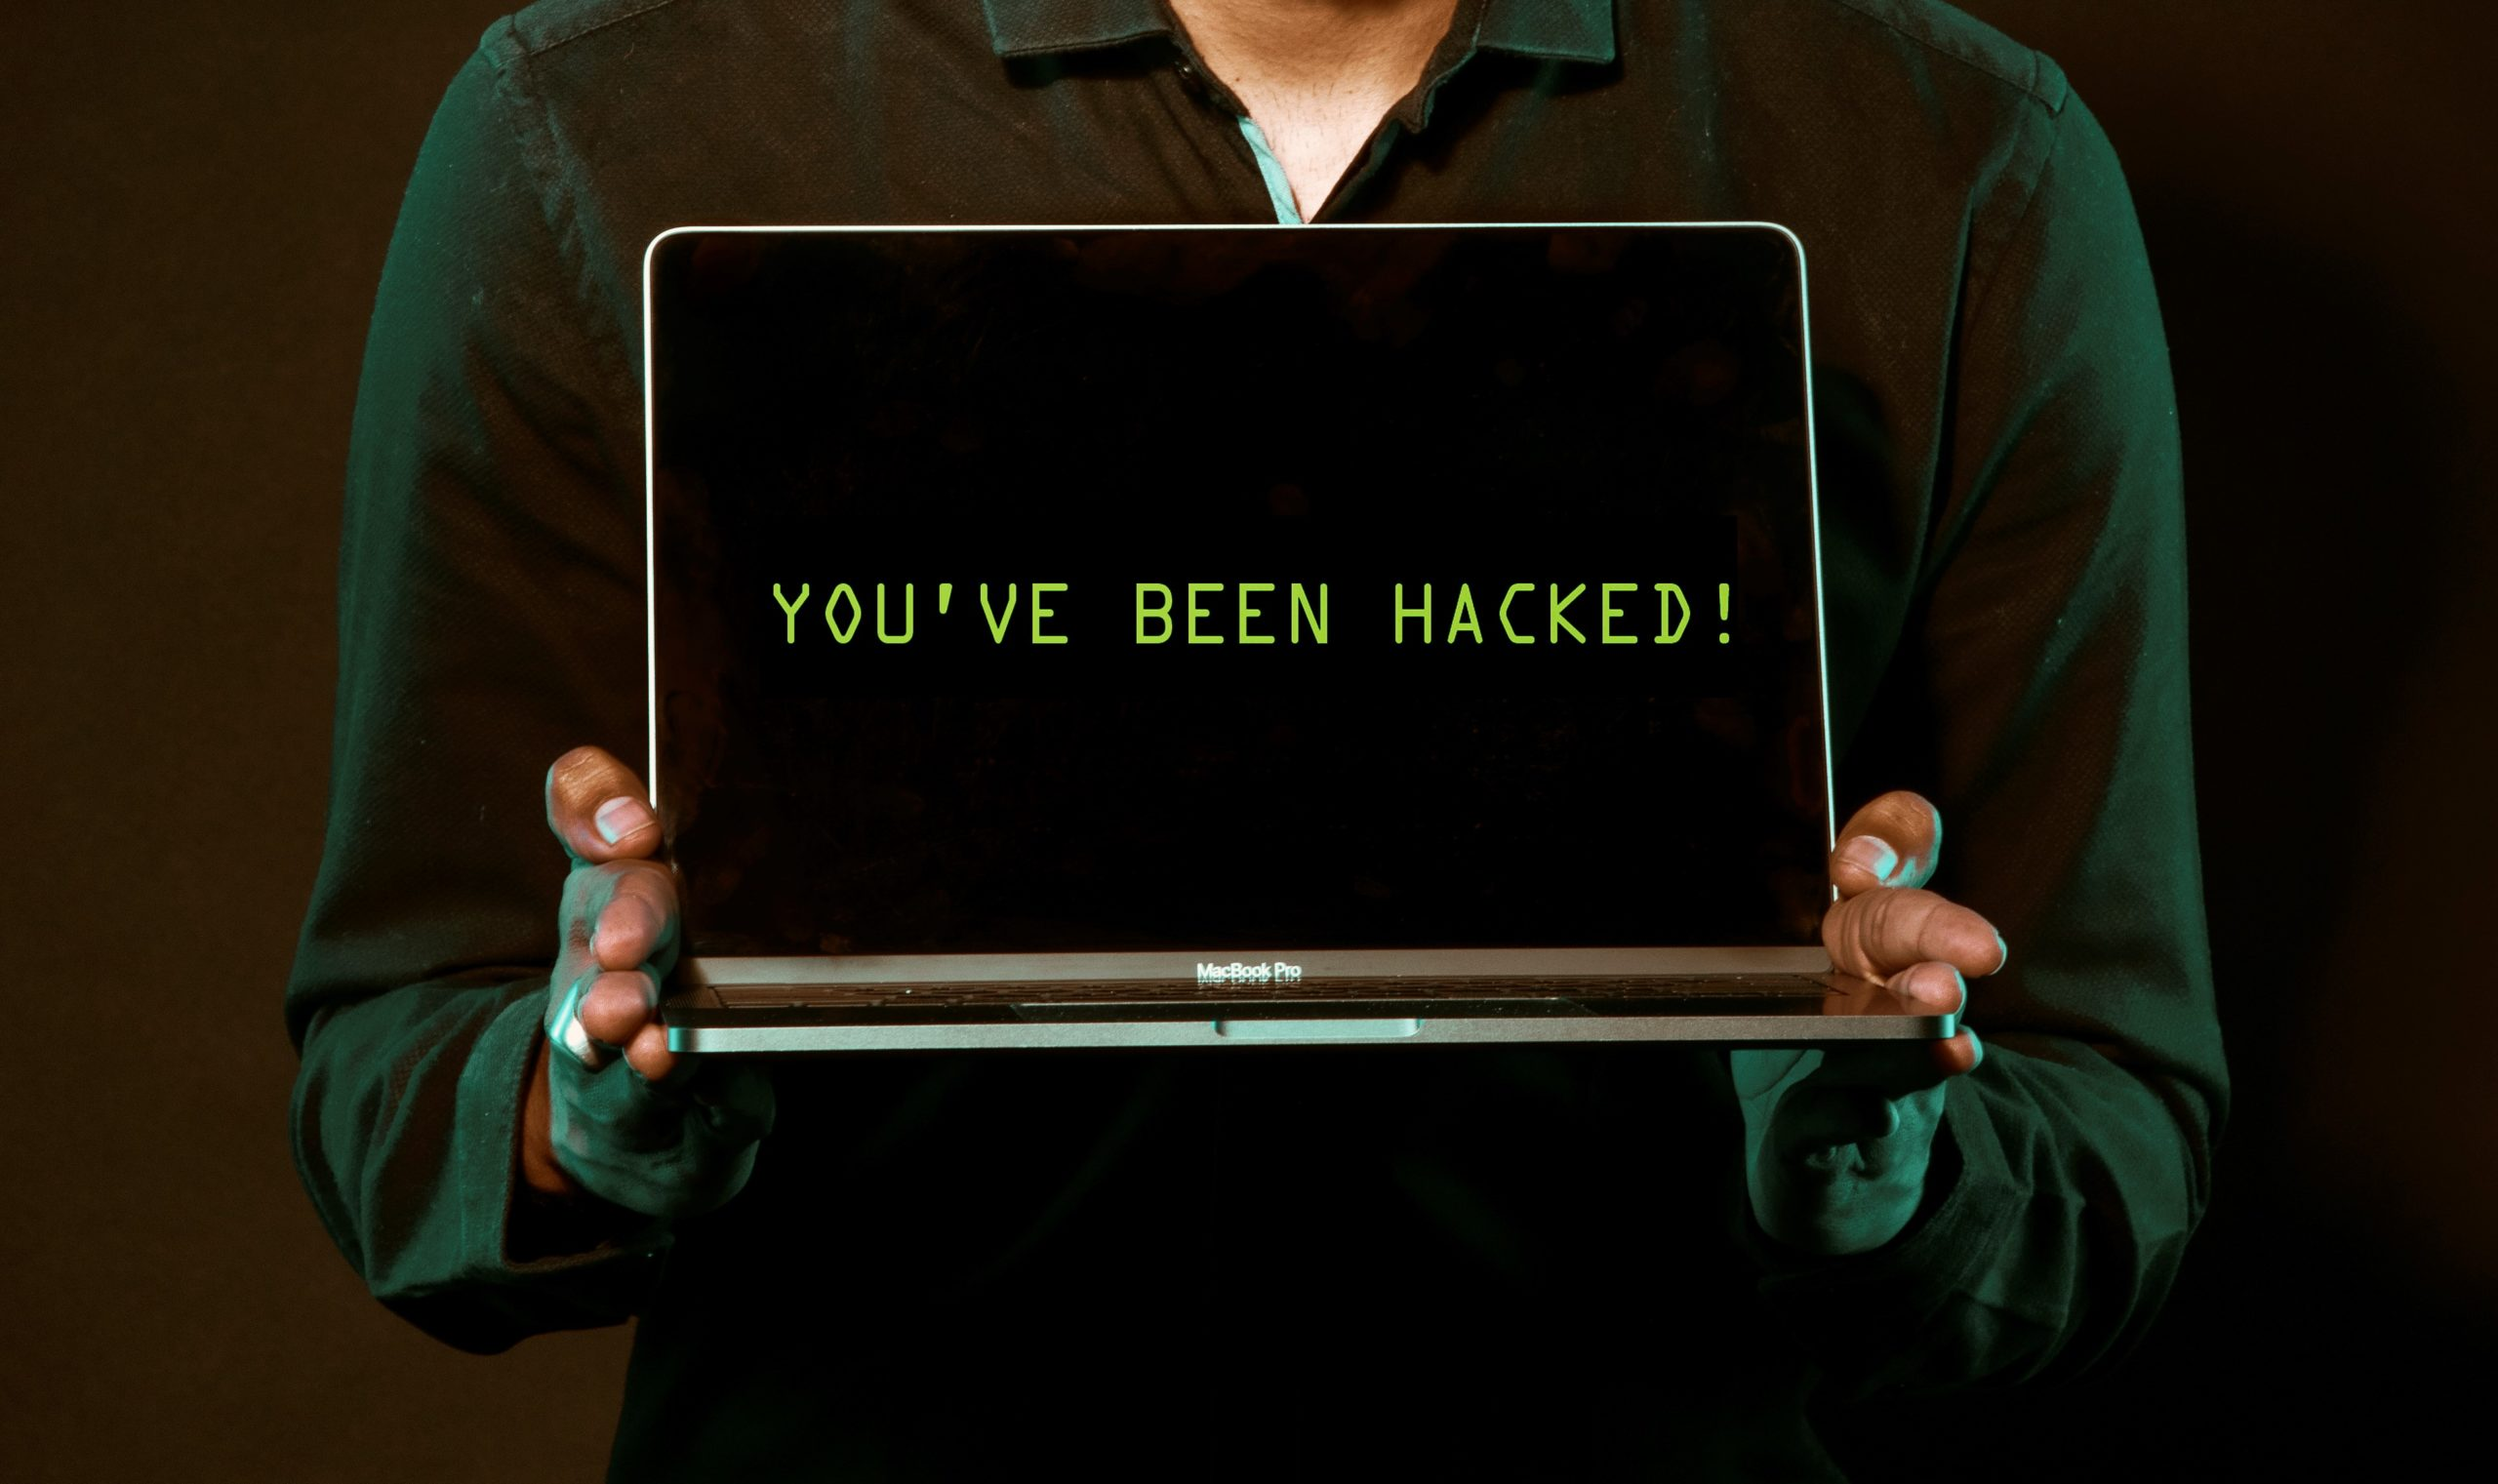 51-of-SMB-Leaders-Think-Their-Business-Isnt-a-Target-for-Cybercriminals-scaled